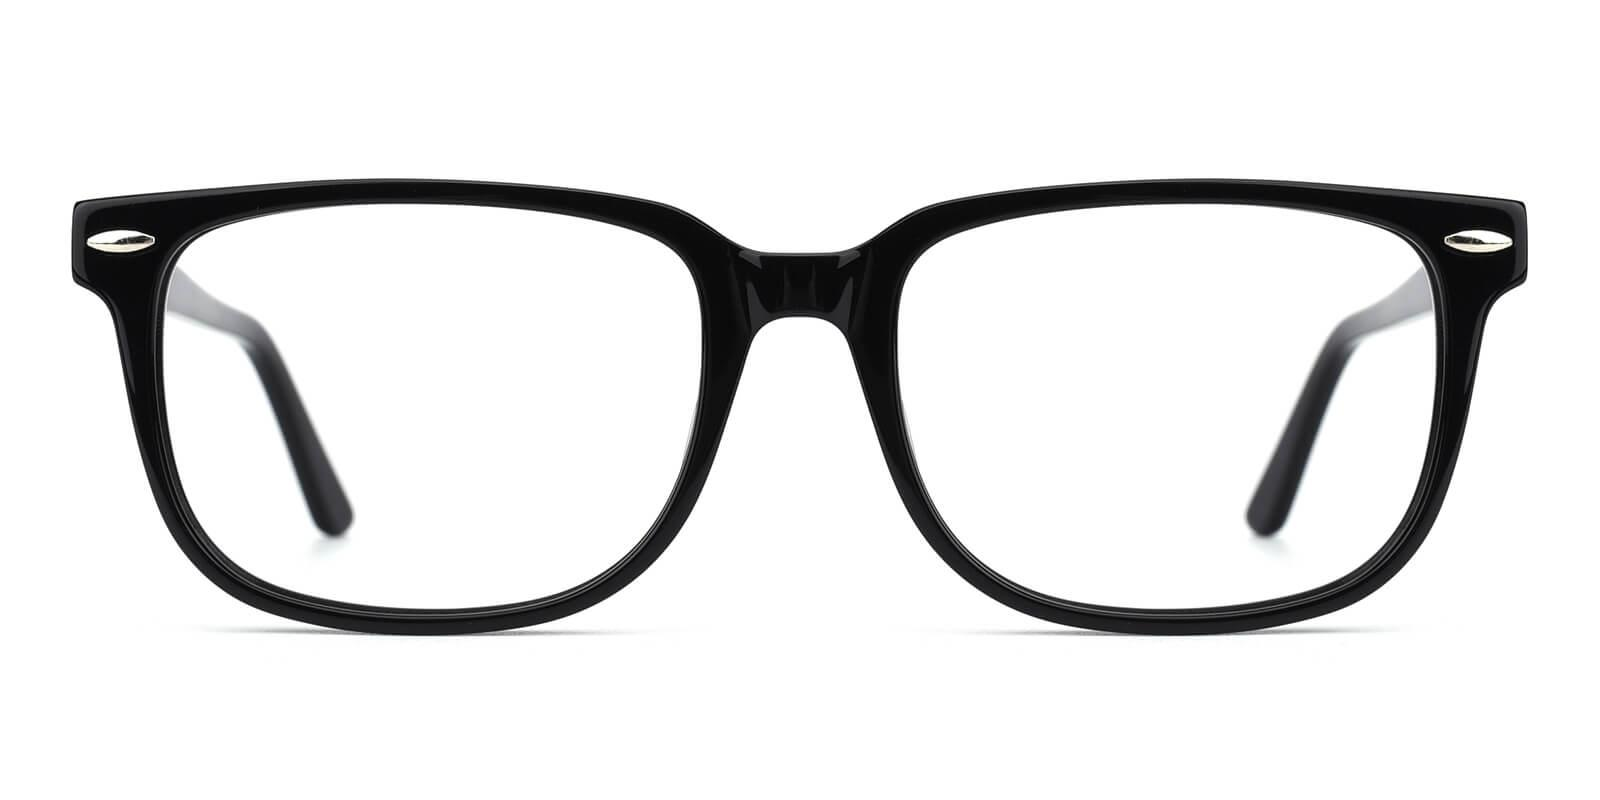 Tempiry-Black-Rectangle-Acetate-Eyeglasses-additional2